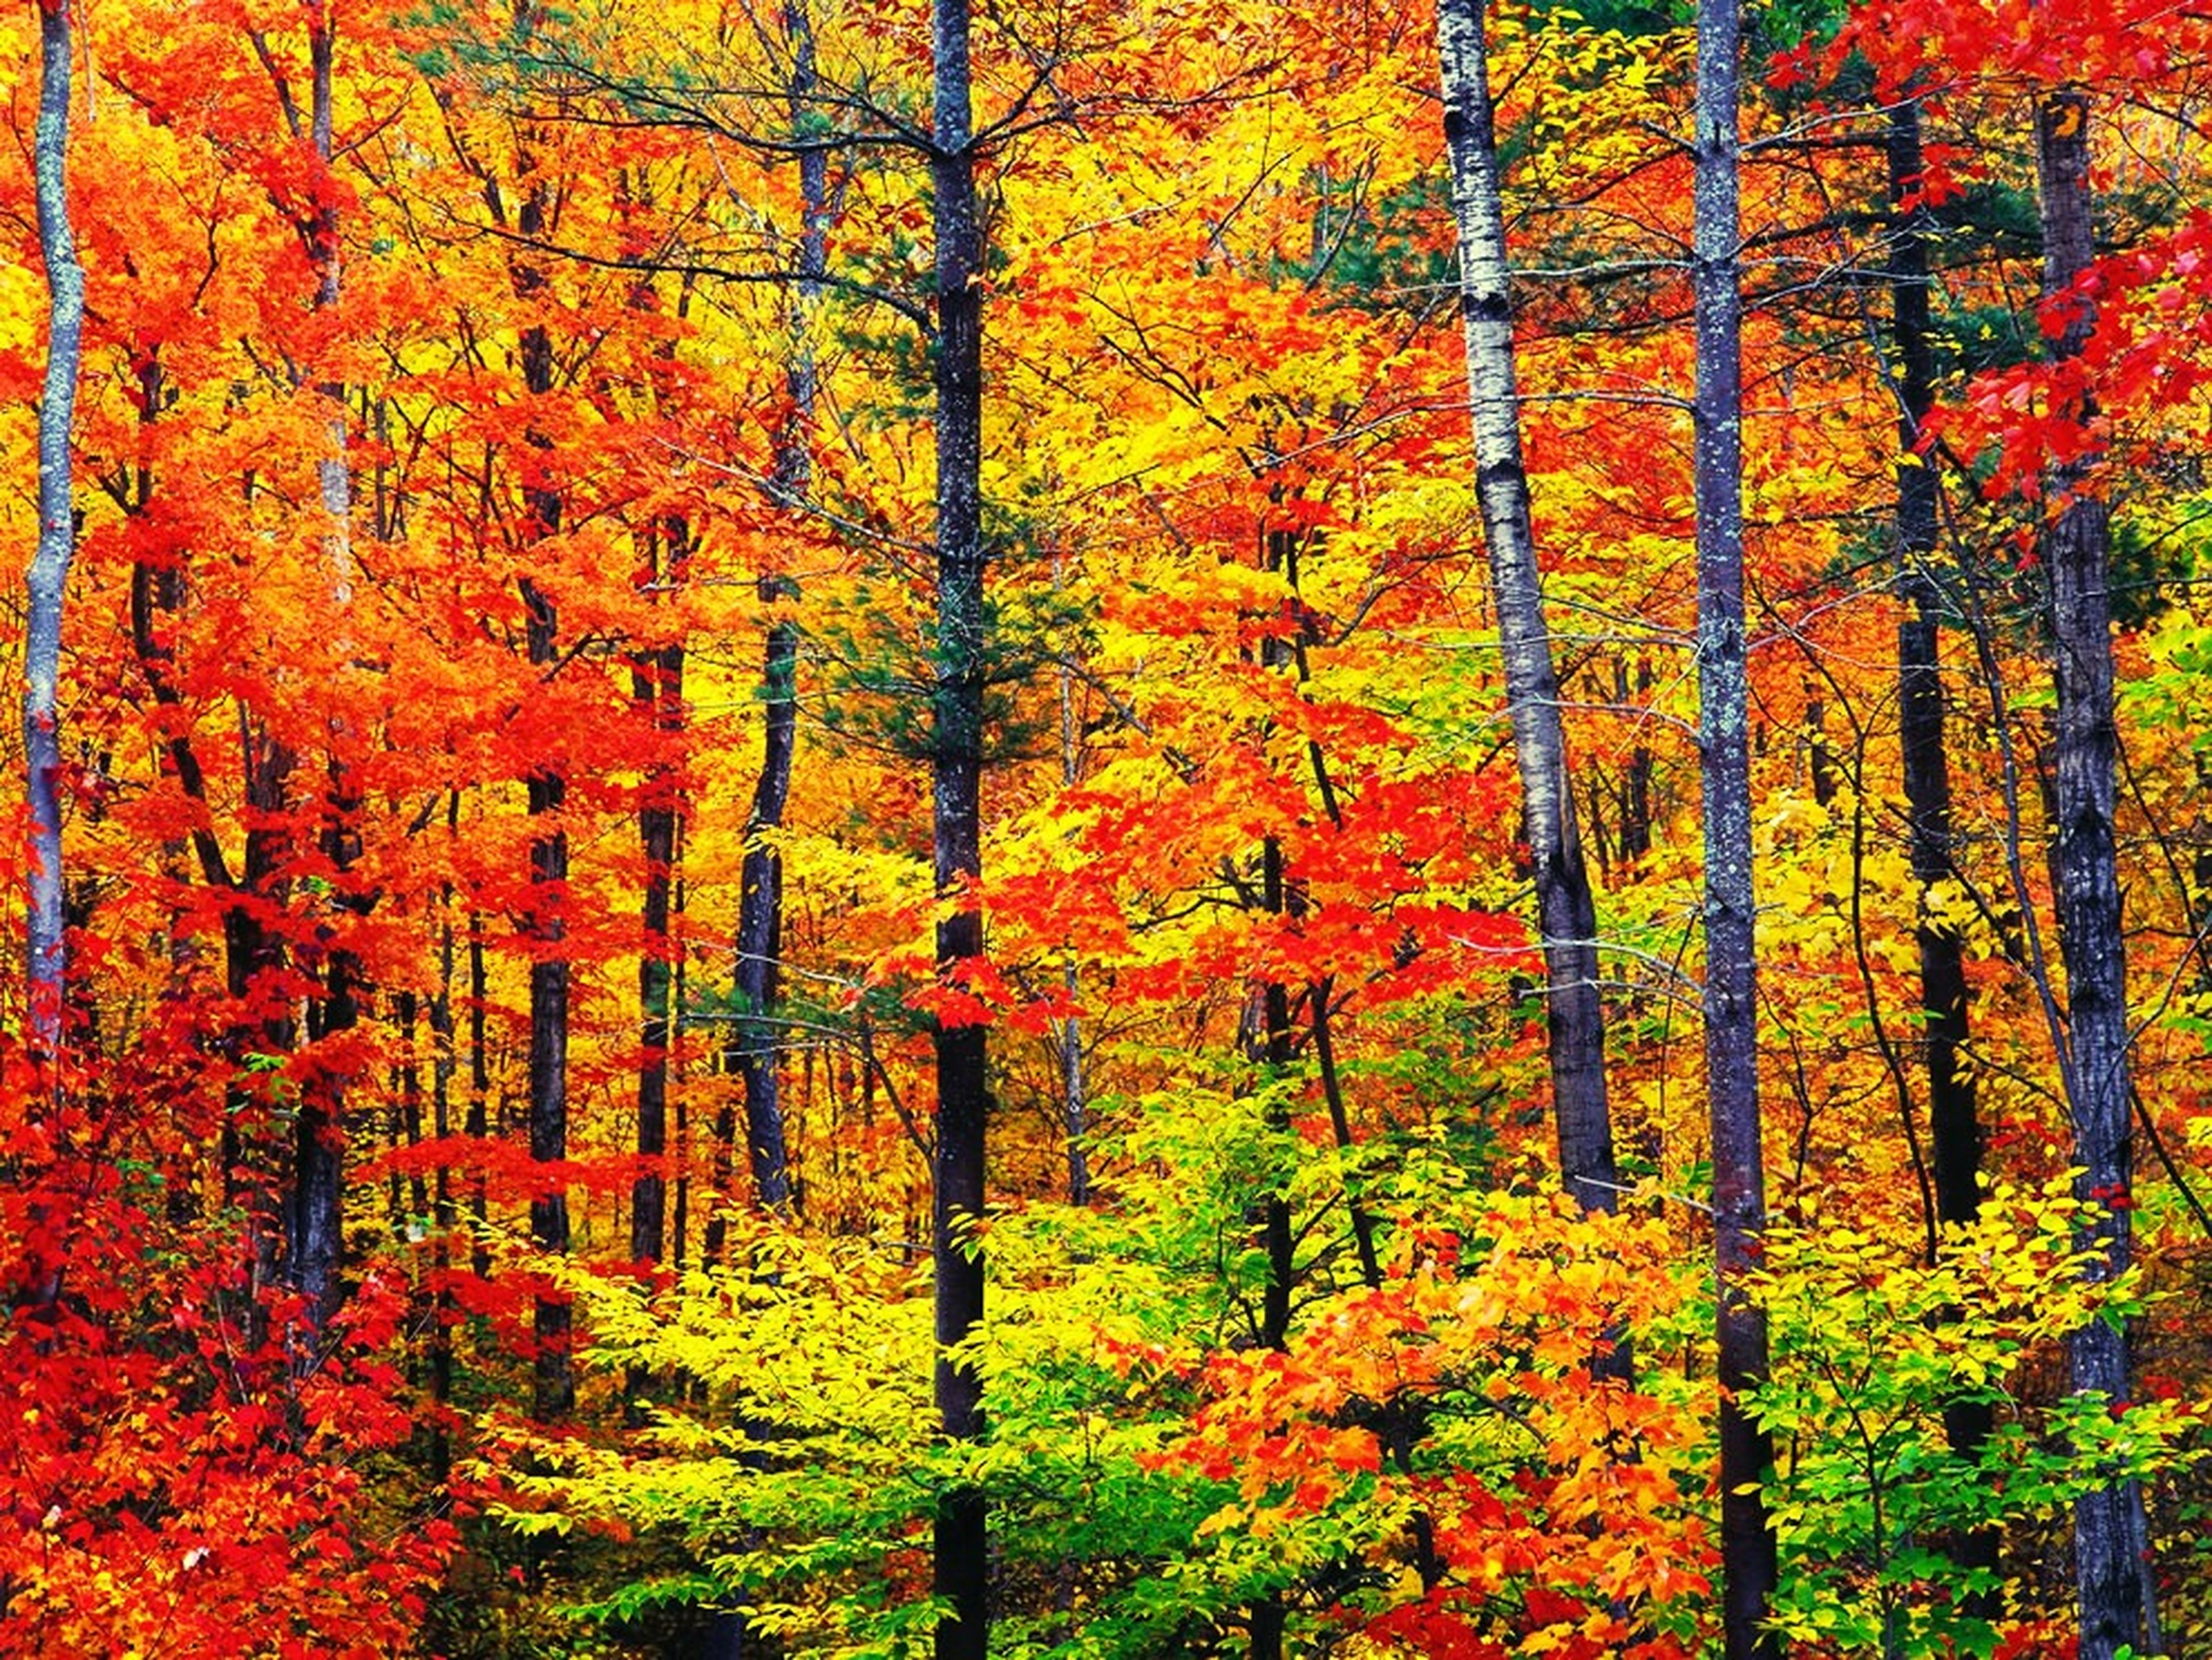 tree, autumn, change, orange color, growth, forest, beauty in nature, season, tranquility, nature, tranquil scene, scenics, red, woodland, branch, lush foliage, tree trunk, non-urban scene, idyllic, yellow